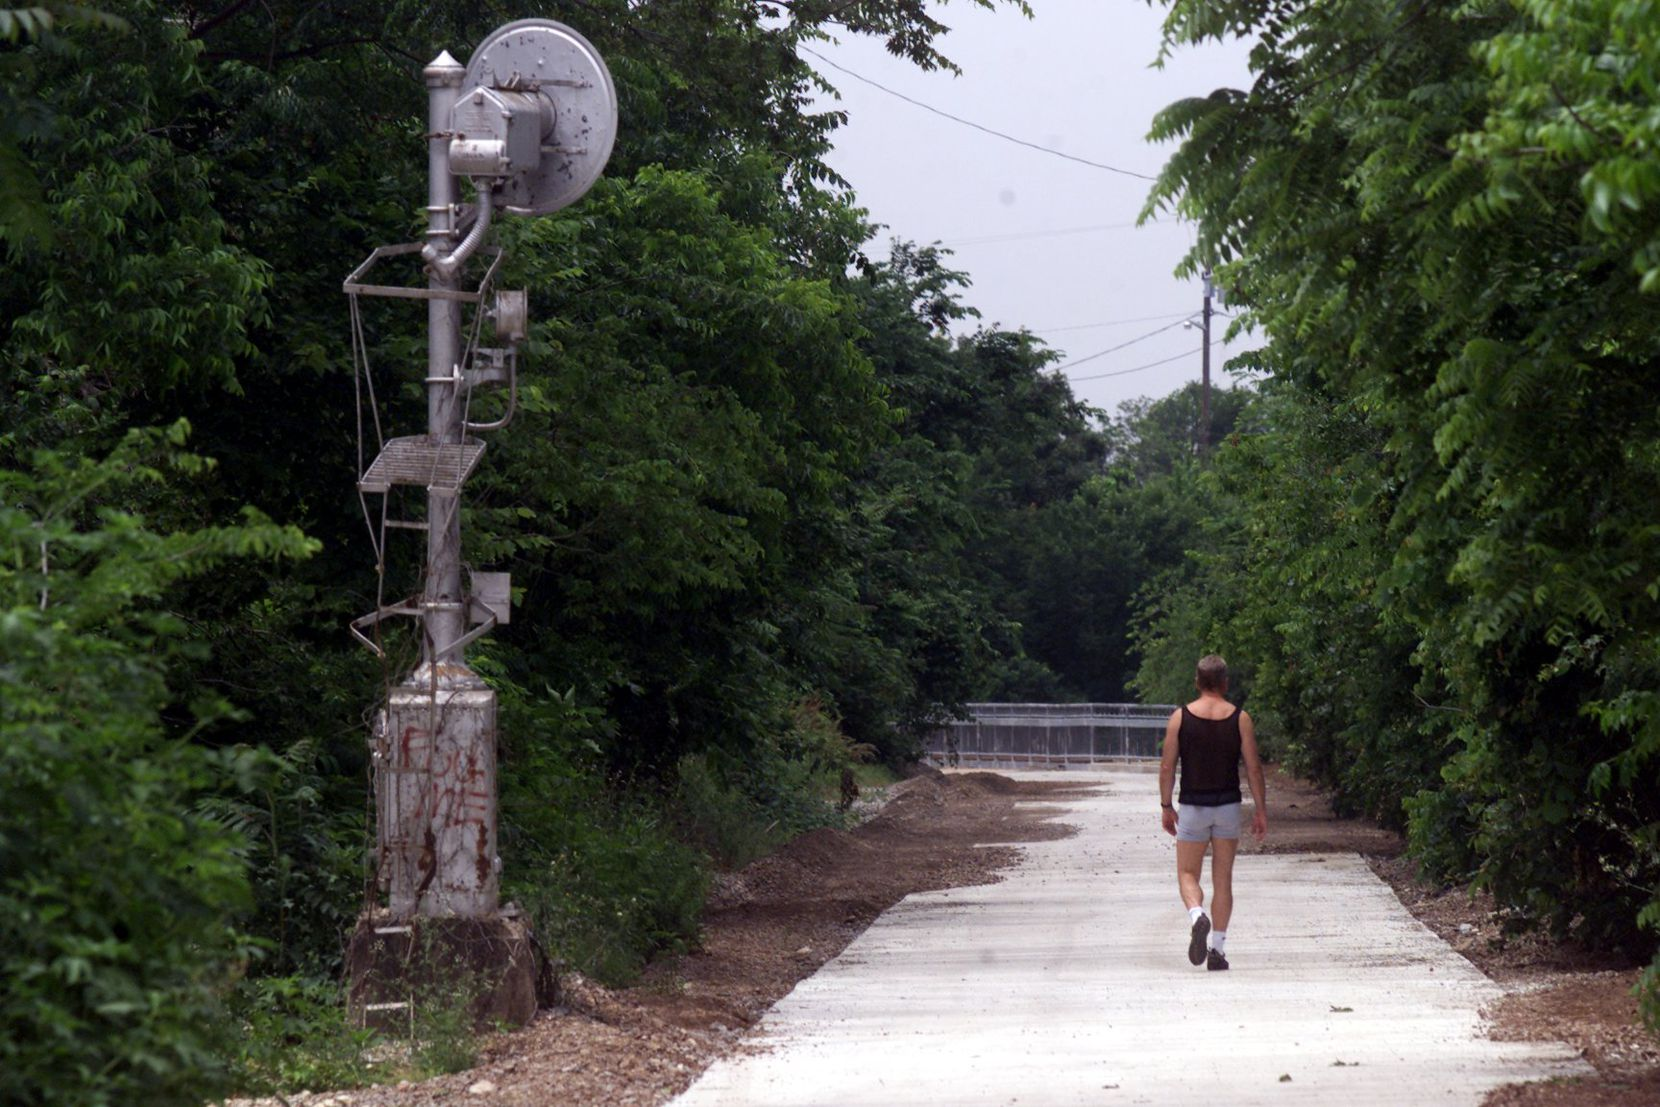 The old Katy railroad tracks were turned into an urban bike/hike trail. In this photo near Reverchon Park you can still see an old railroad signal as a man walks down the trail on May 10, 2000.